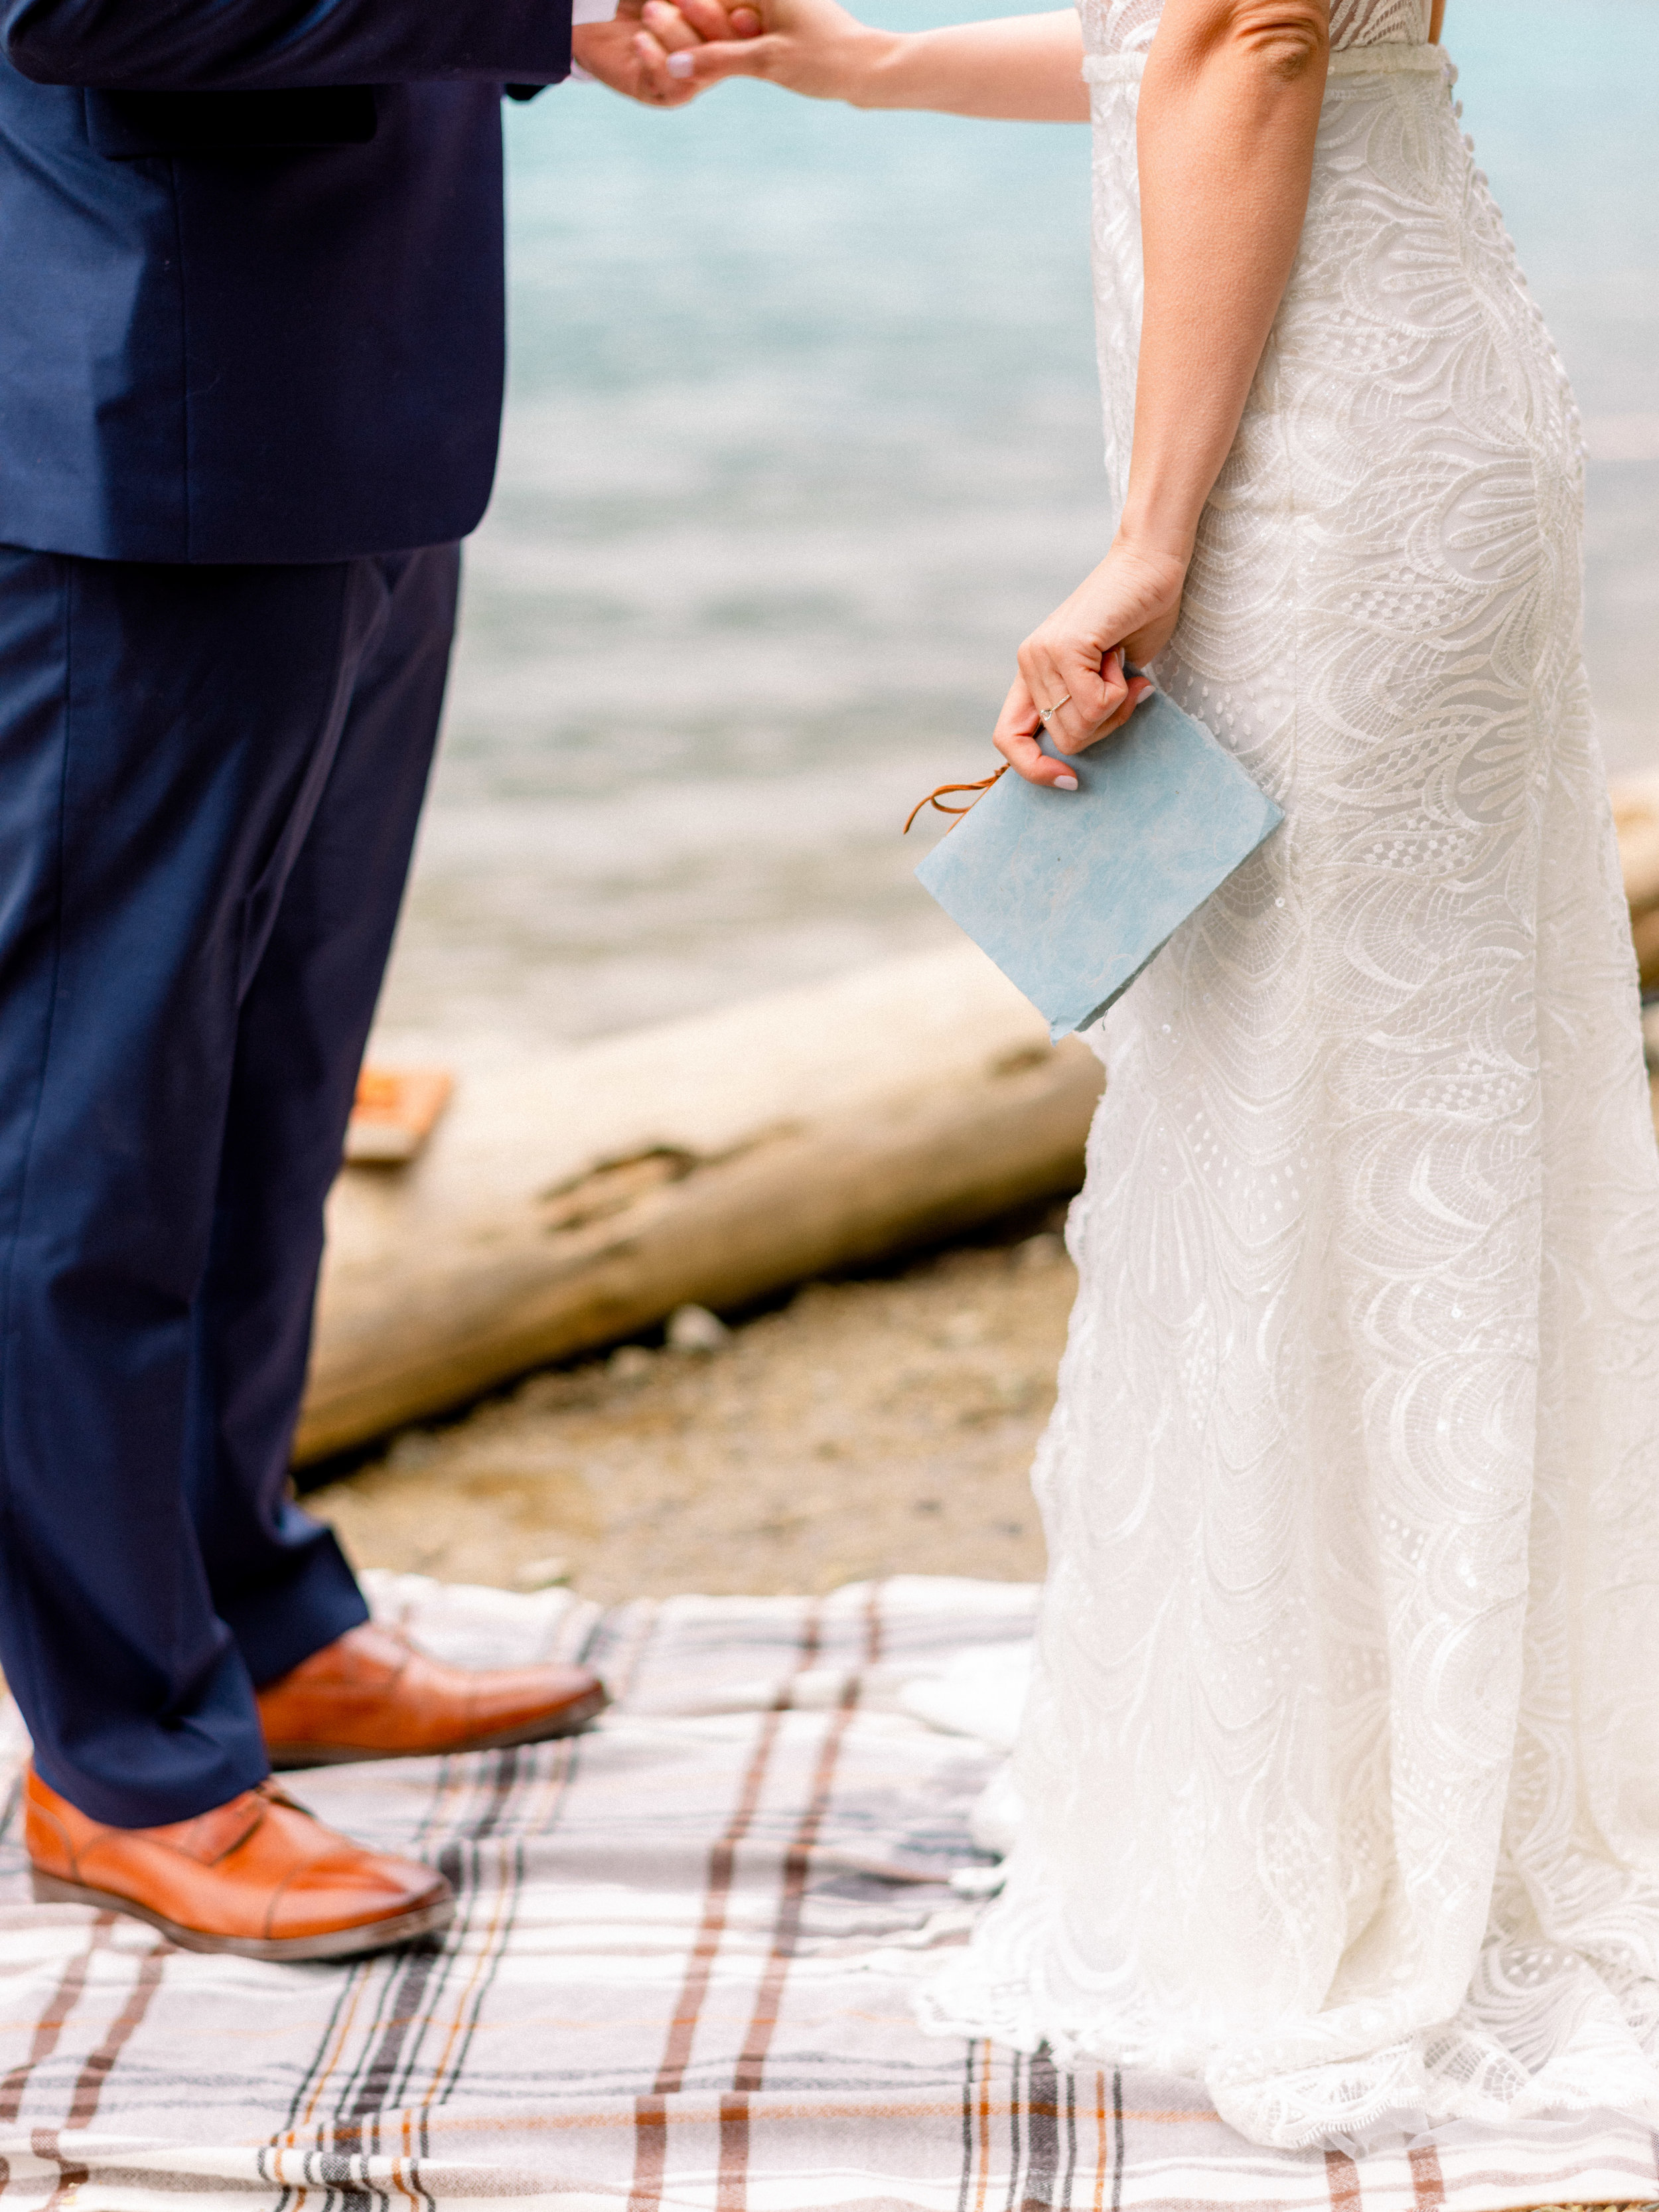 Jet Set Wed :: A Lakeside Elopement in Banff, Canada